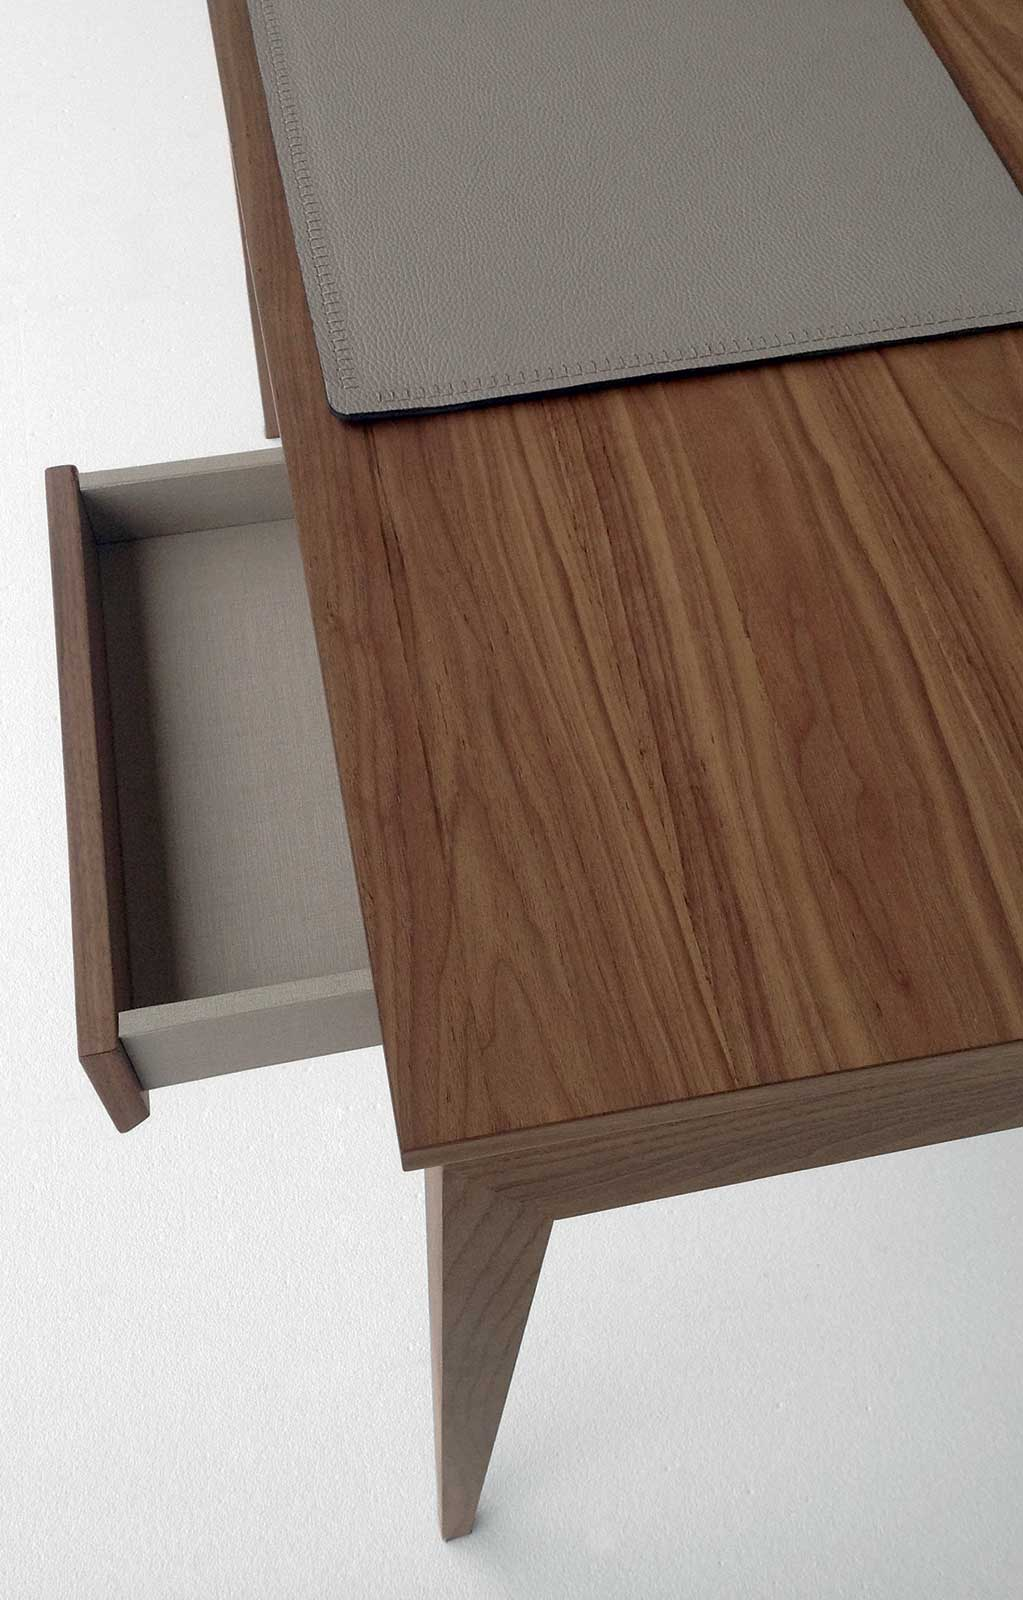 Dad is a personal wood desk that combines design, elegance and functionality. Enjoy a beautiful traditional look with smart features with this home or office desk.